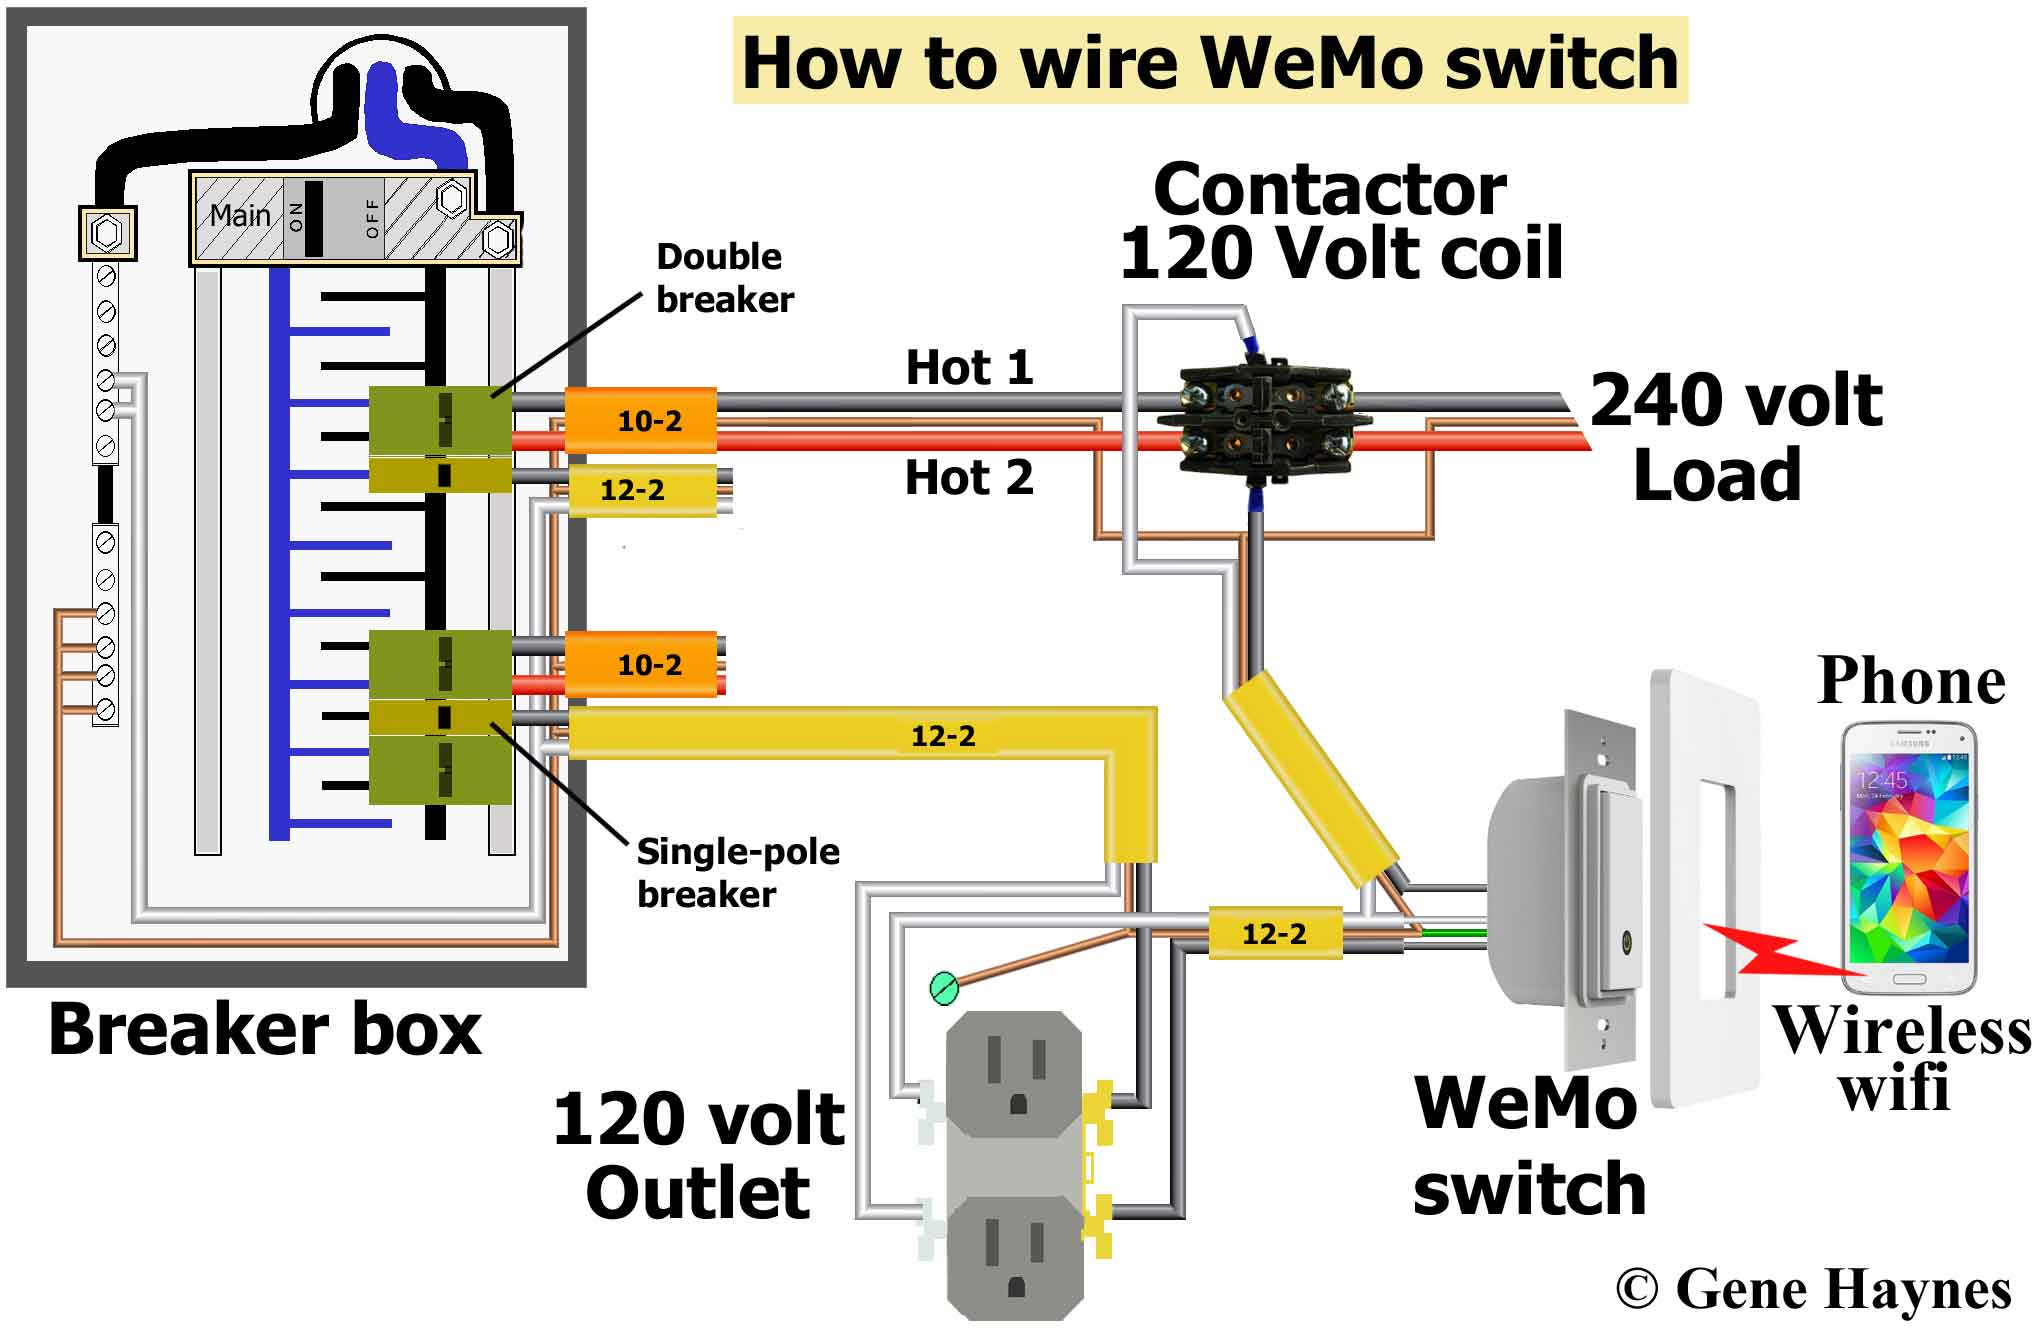 WeMo switch wiring illustration 3 control 240 volt with wemo volt free contact wiring diagram at eliteediting.co